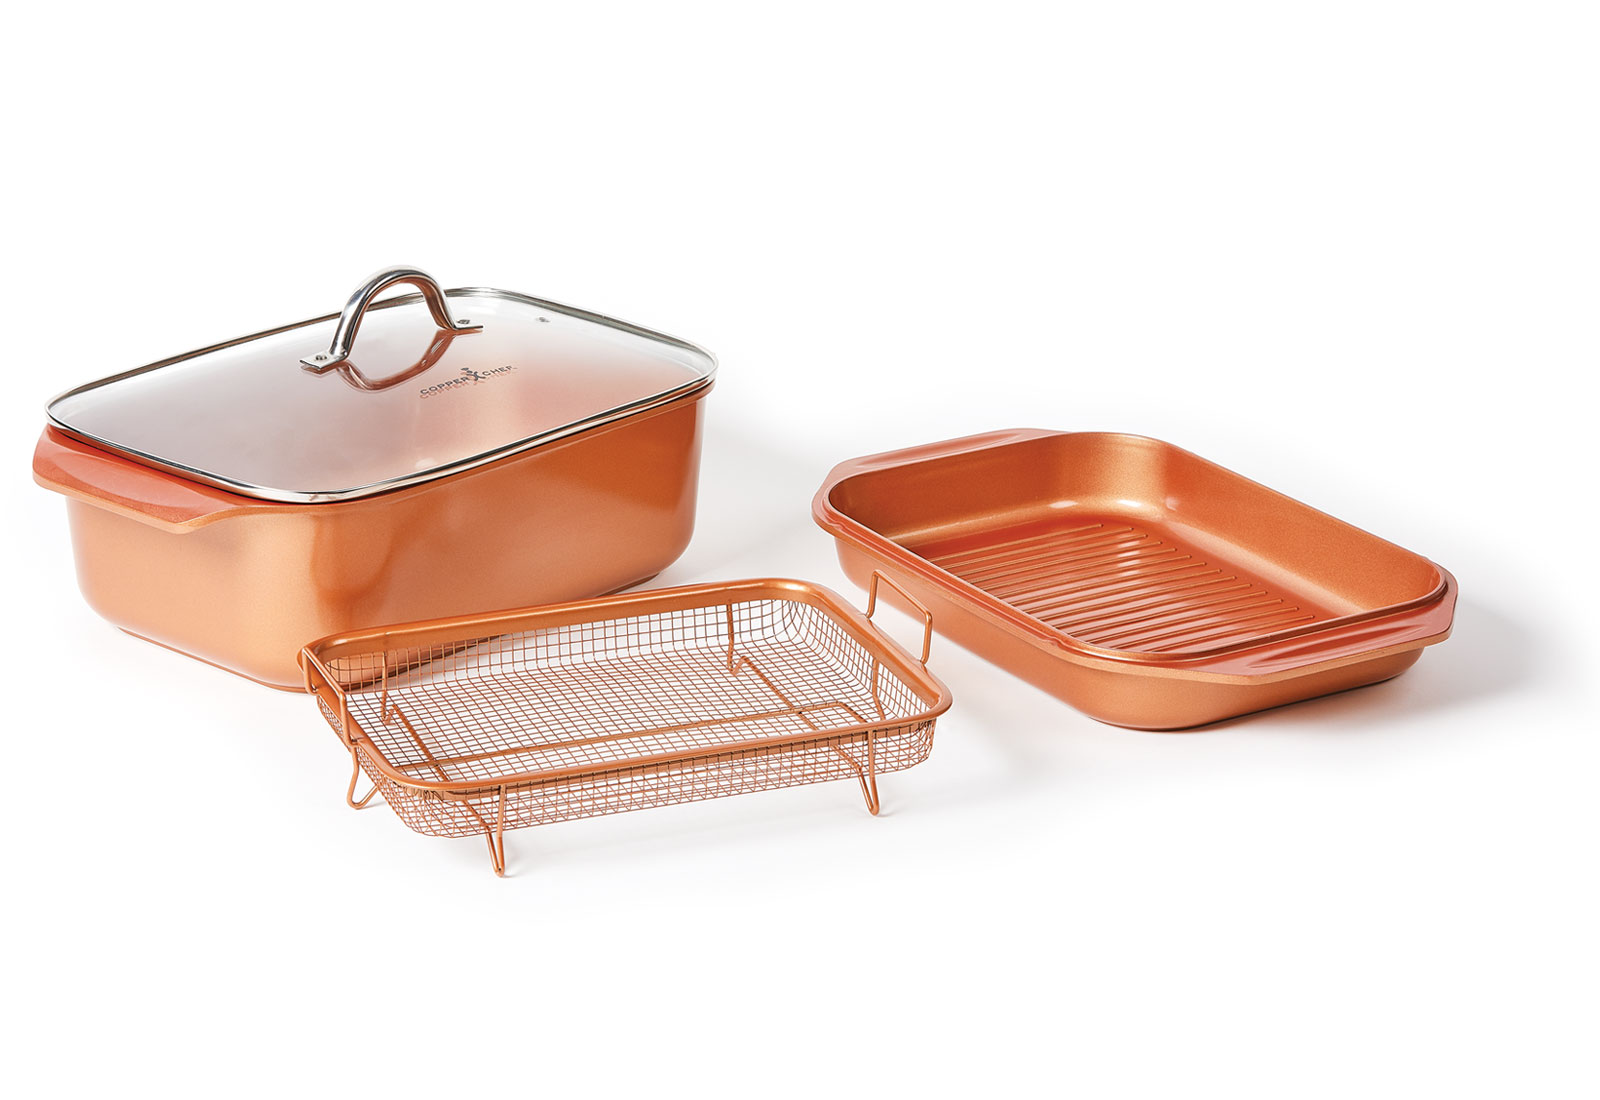 Copper Chef Signature Wonder Cooker Product Image